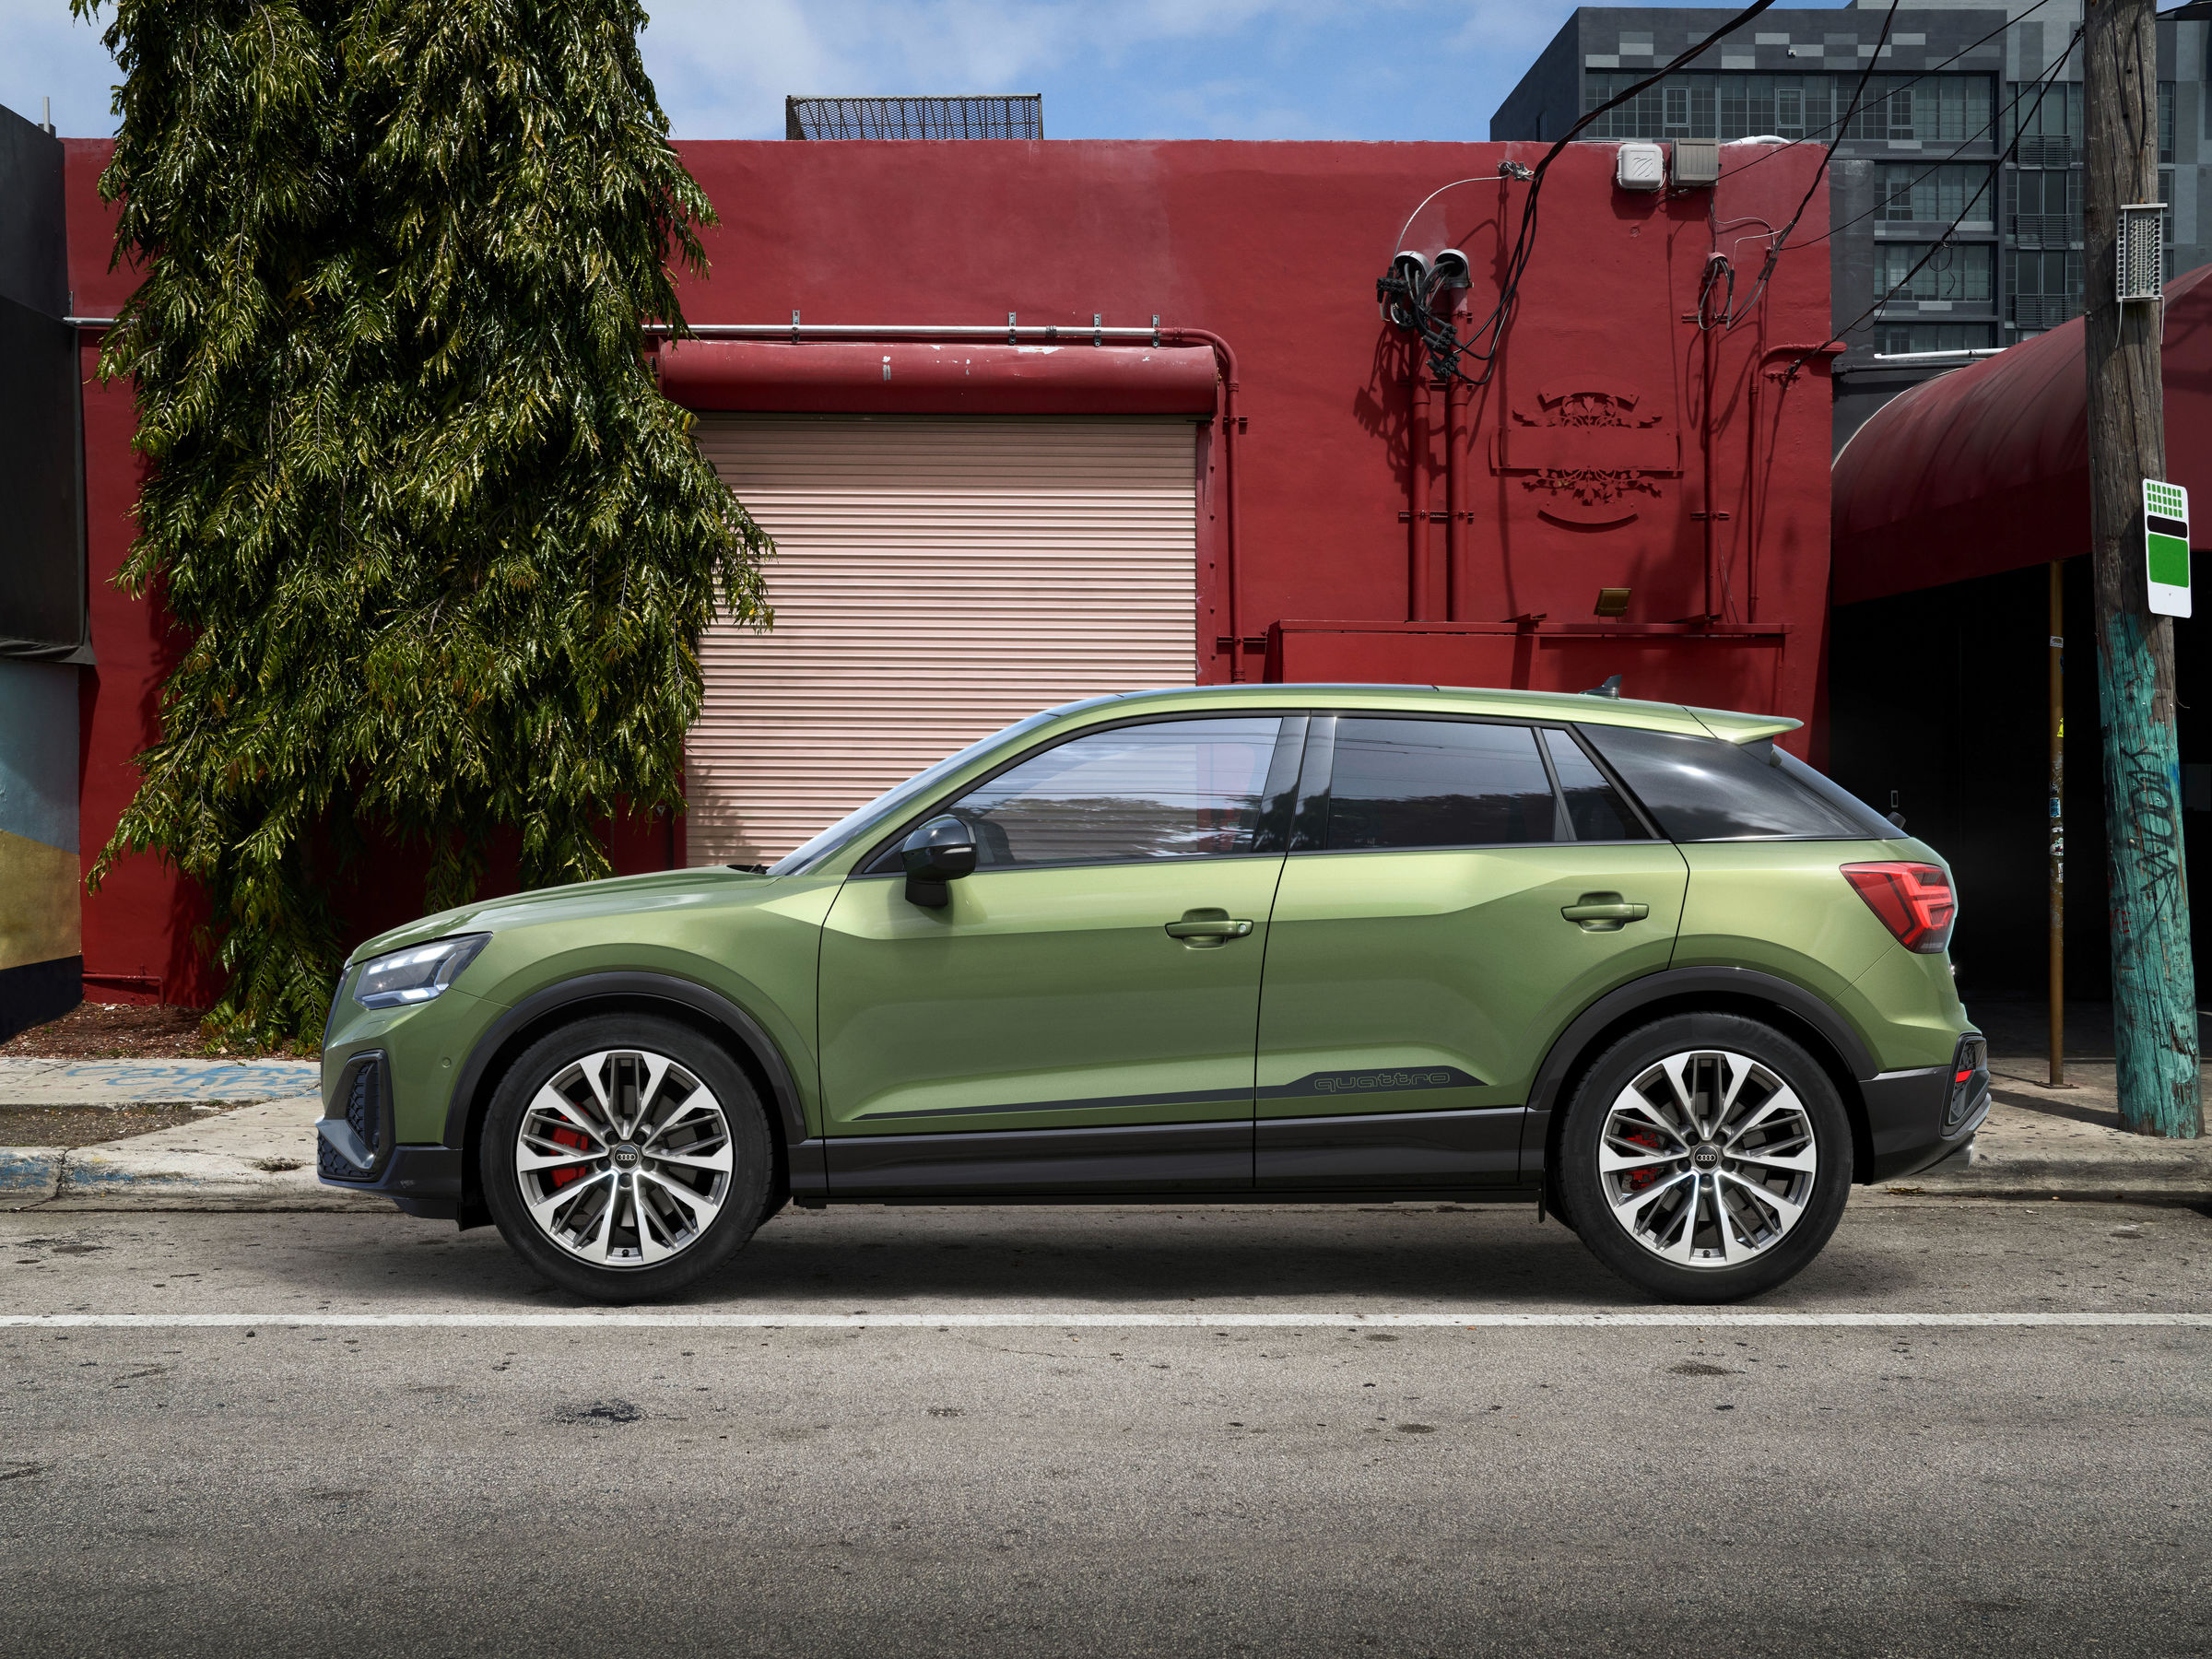 Exceptional compact sports car for individualists: Audi gives the SQ2 an even sharper design - Brand Spur